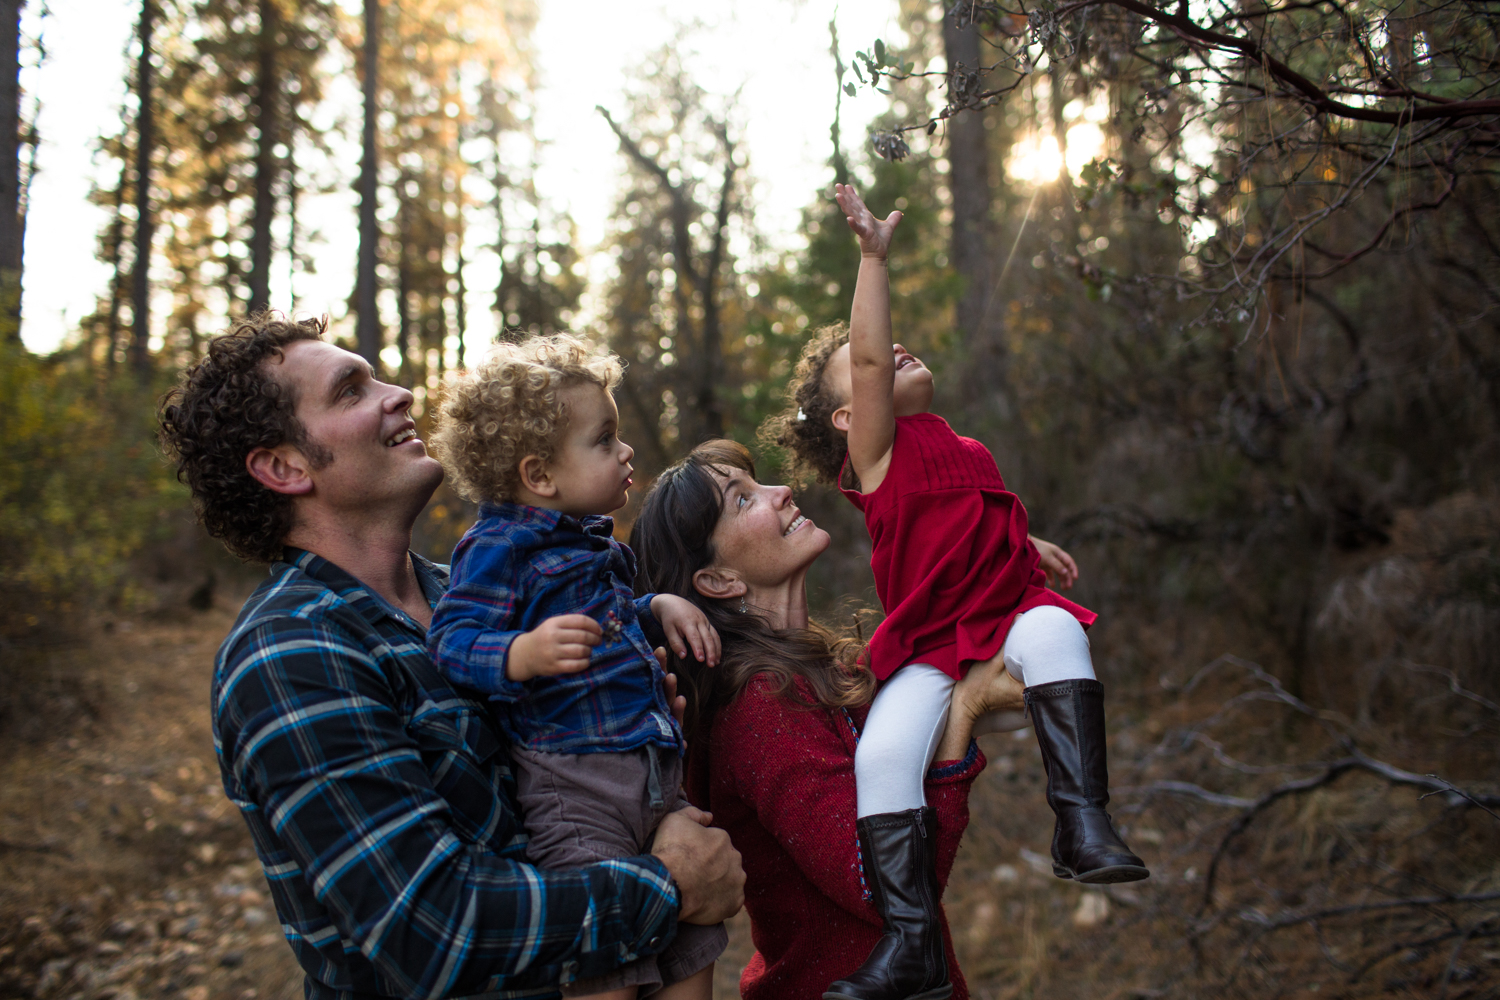 nevada city family portrait photographer